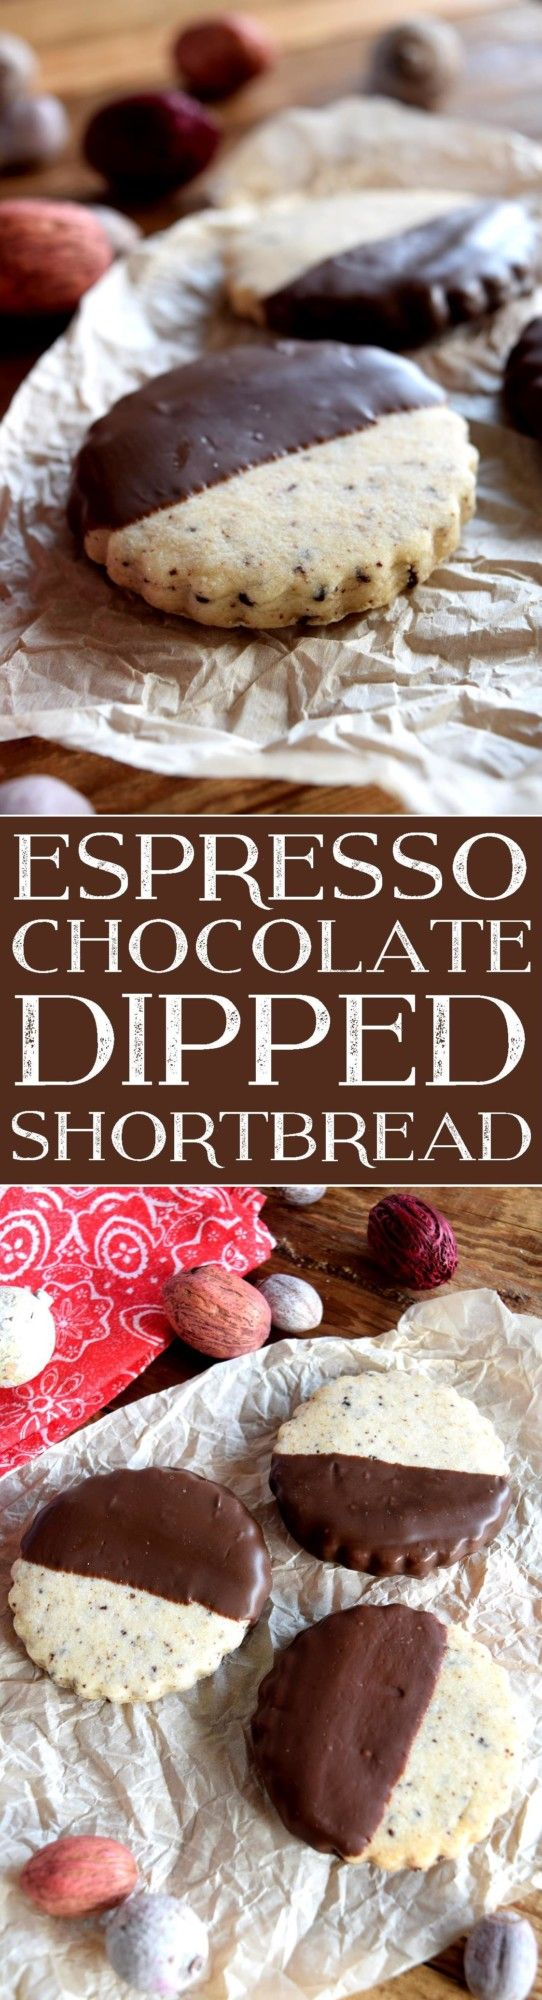 espresso-chocolate-dipped-shortbread